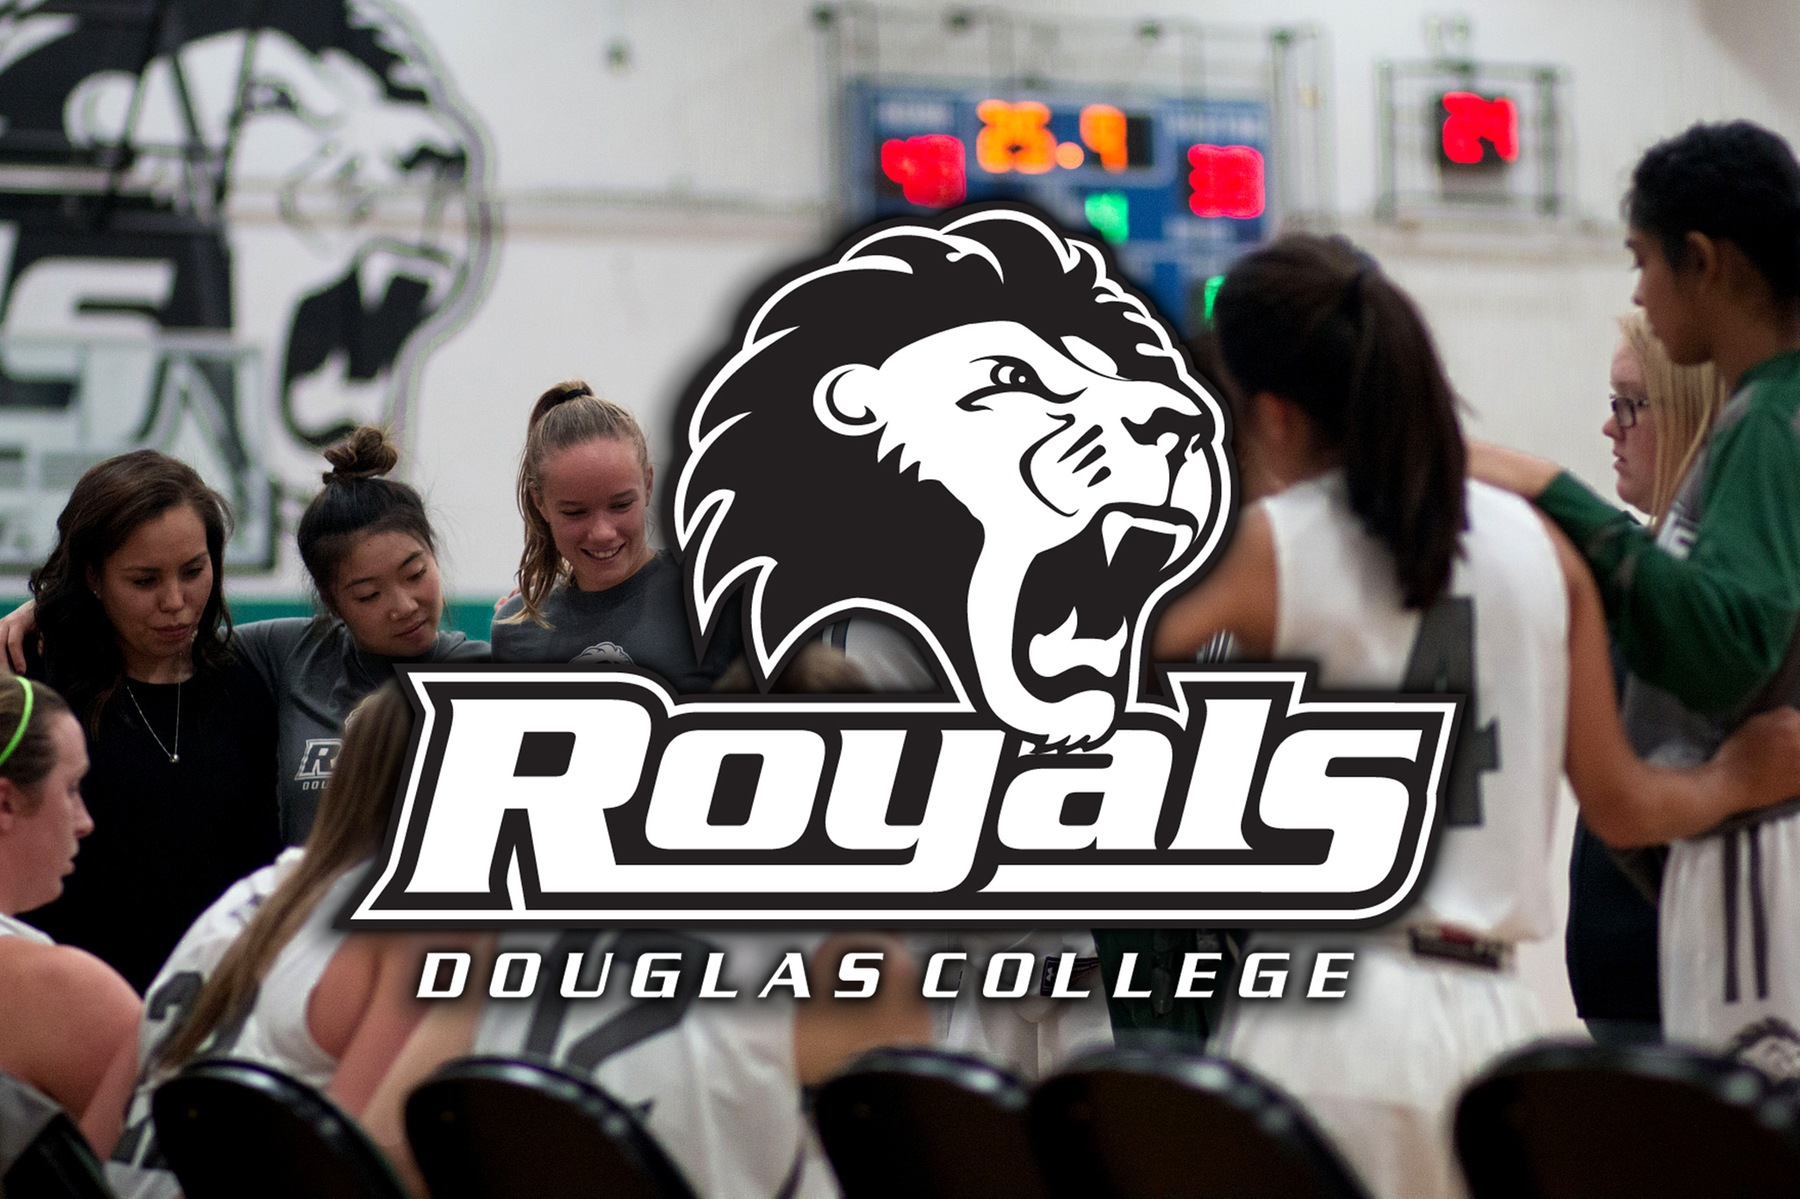 Royals Womens's Basketball team